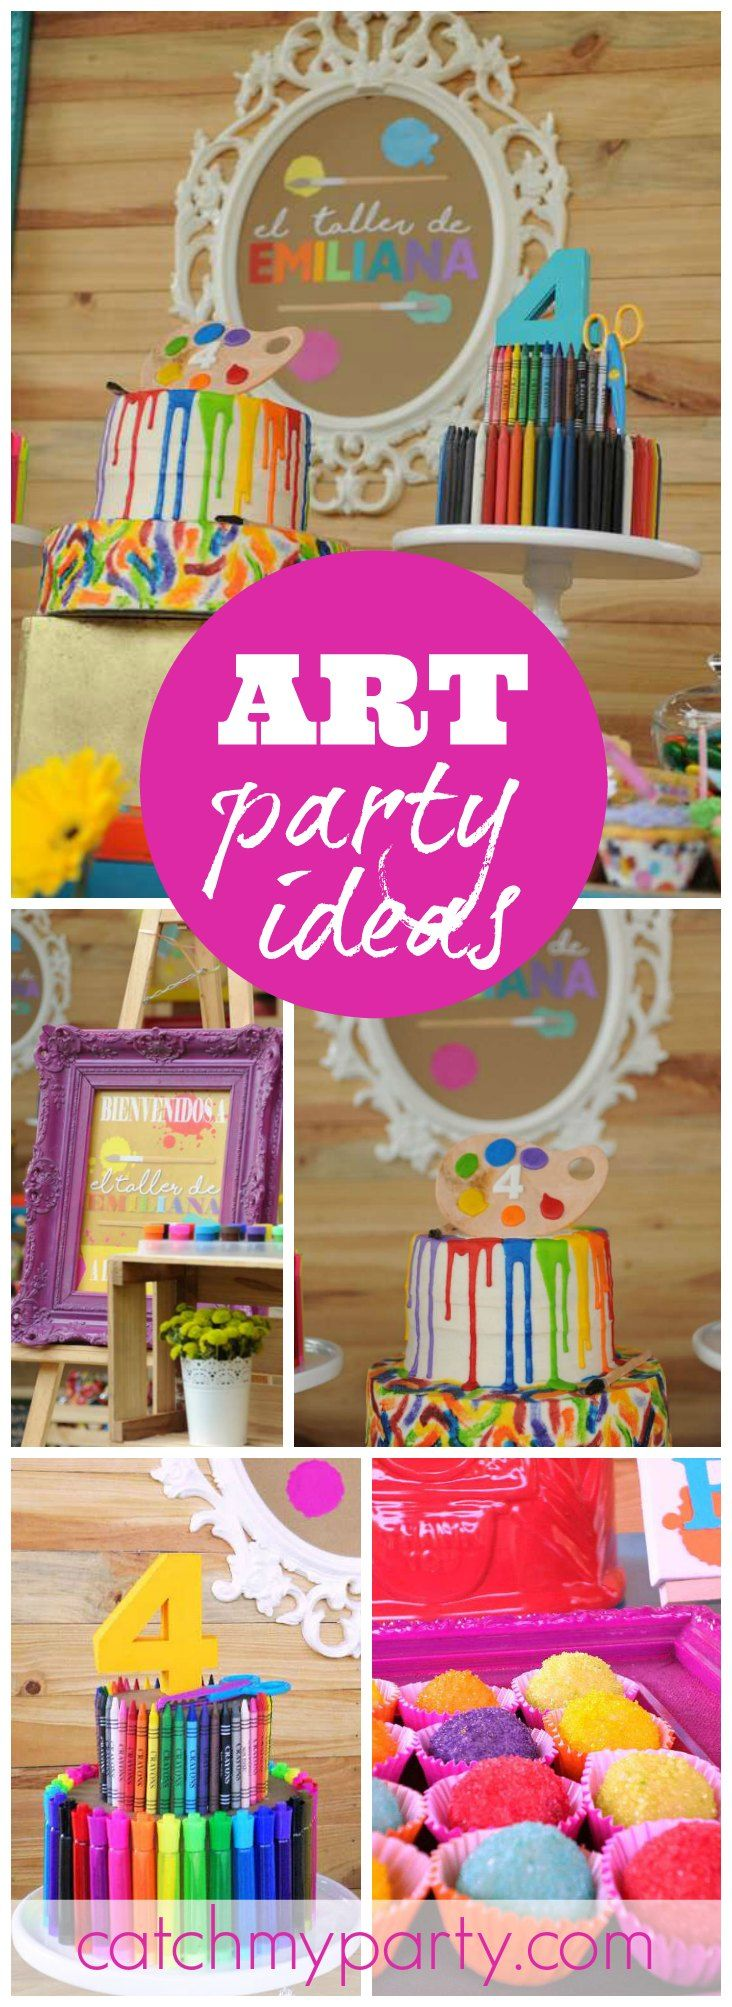 Check out this classic, yet fun dessert table for an art themed party! See more party ideas at CatchMyParty.com!